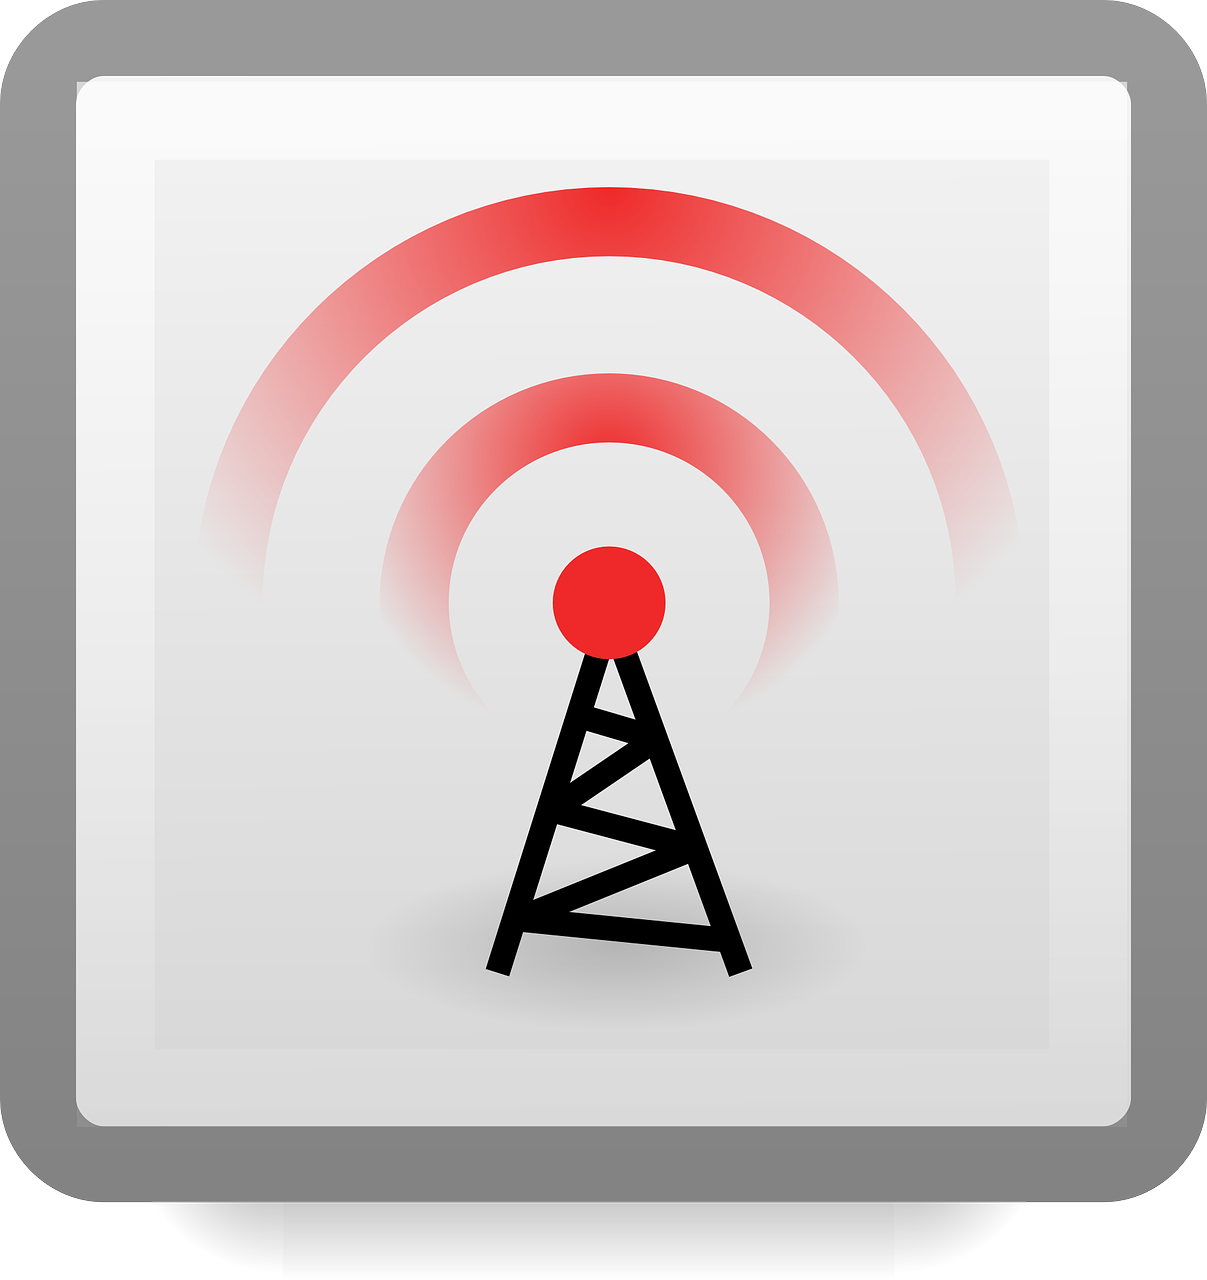 weakness of wifi Disadvantages of wifi security – to combat this consideration, wireless networks may choose to utilize some of the various encryption technologies available some of the more commonly utilized encryption methods, however, are known to have weaknesses that a dedicated adversary can compromise.